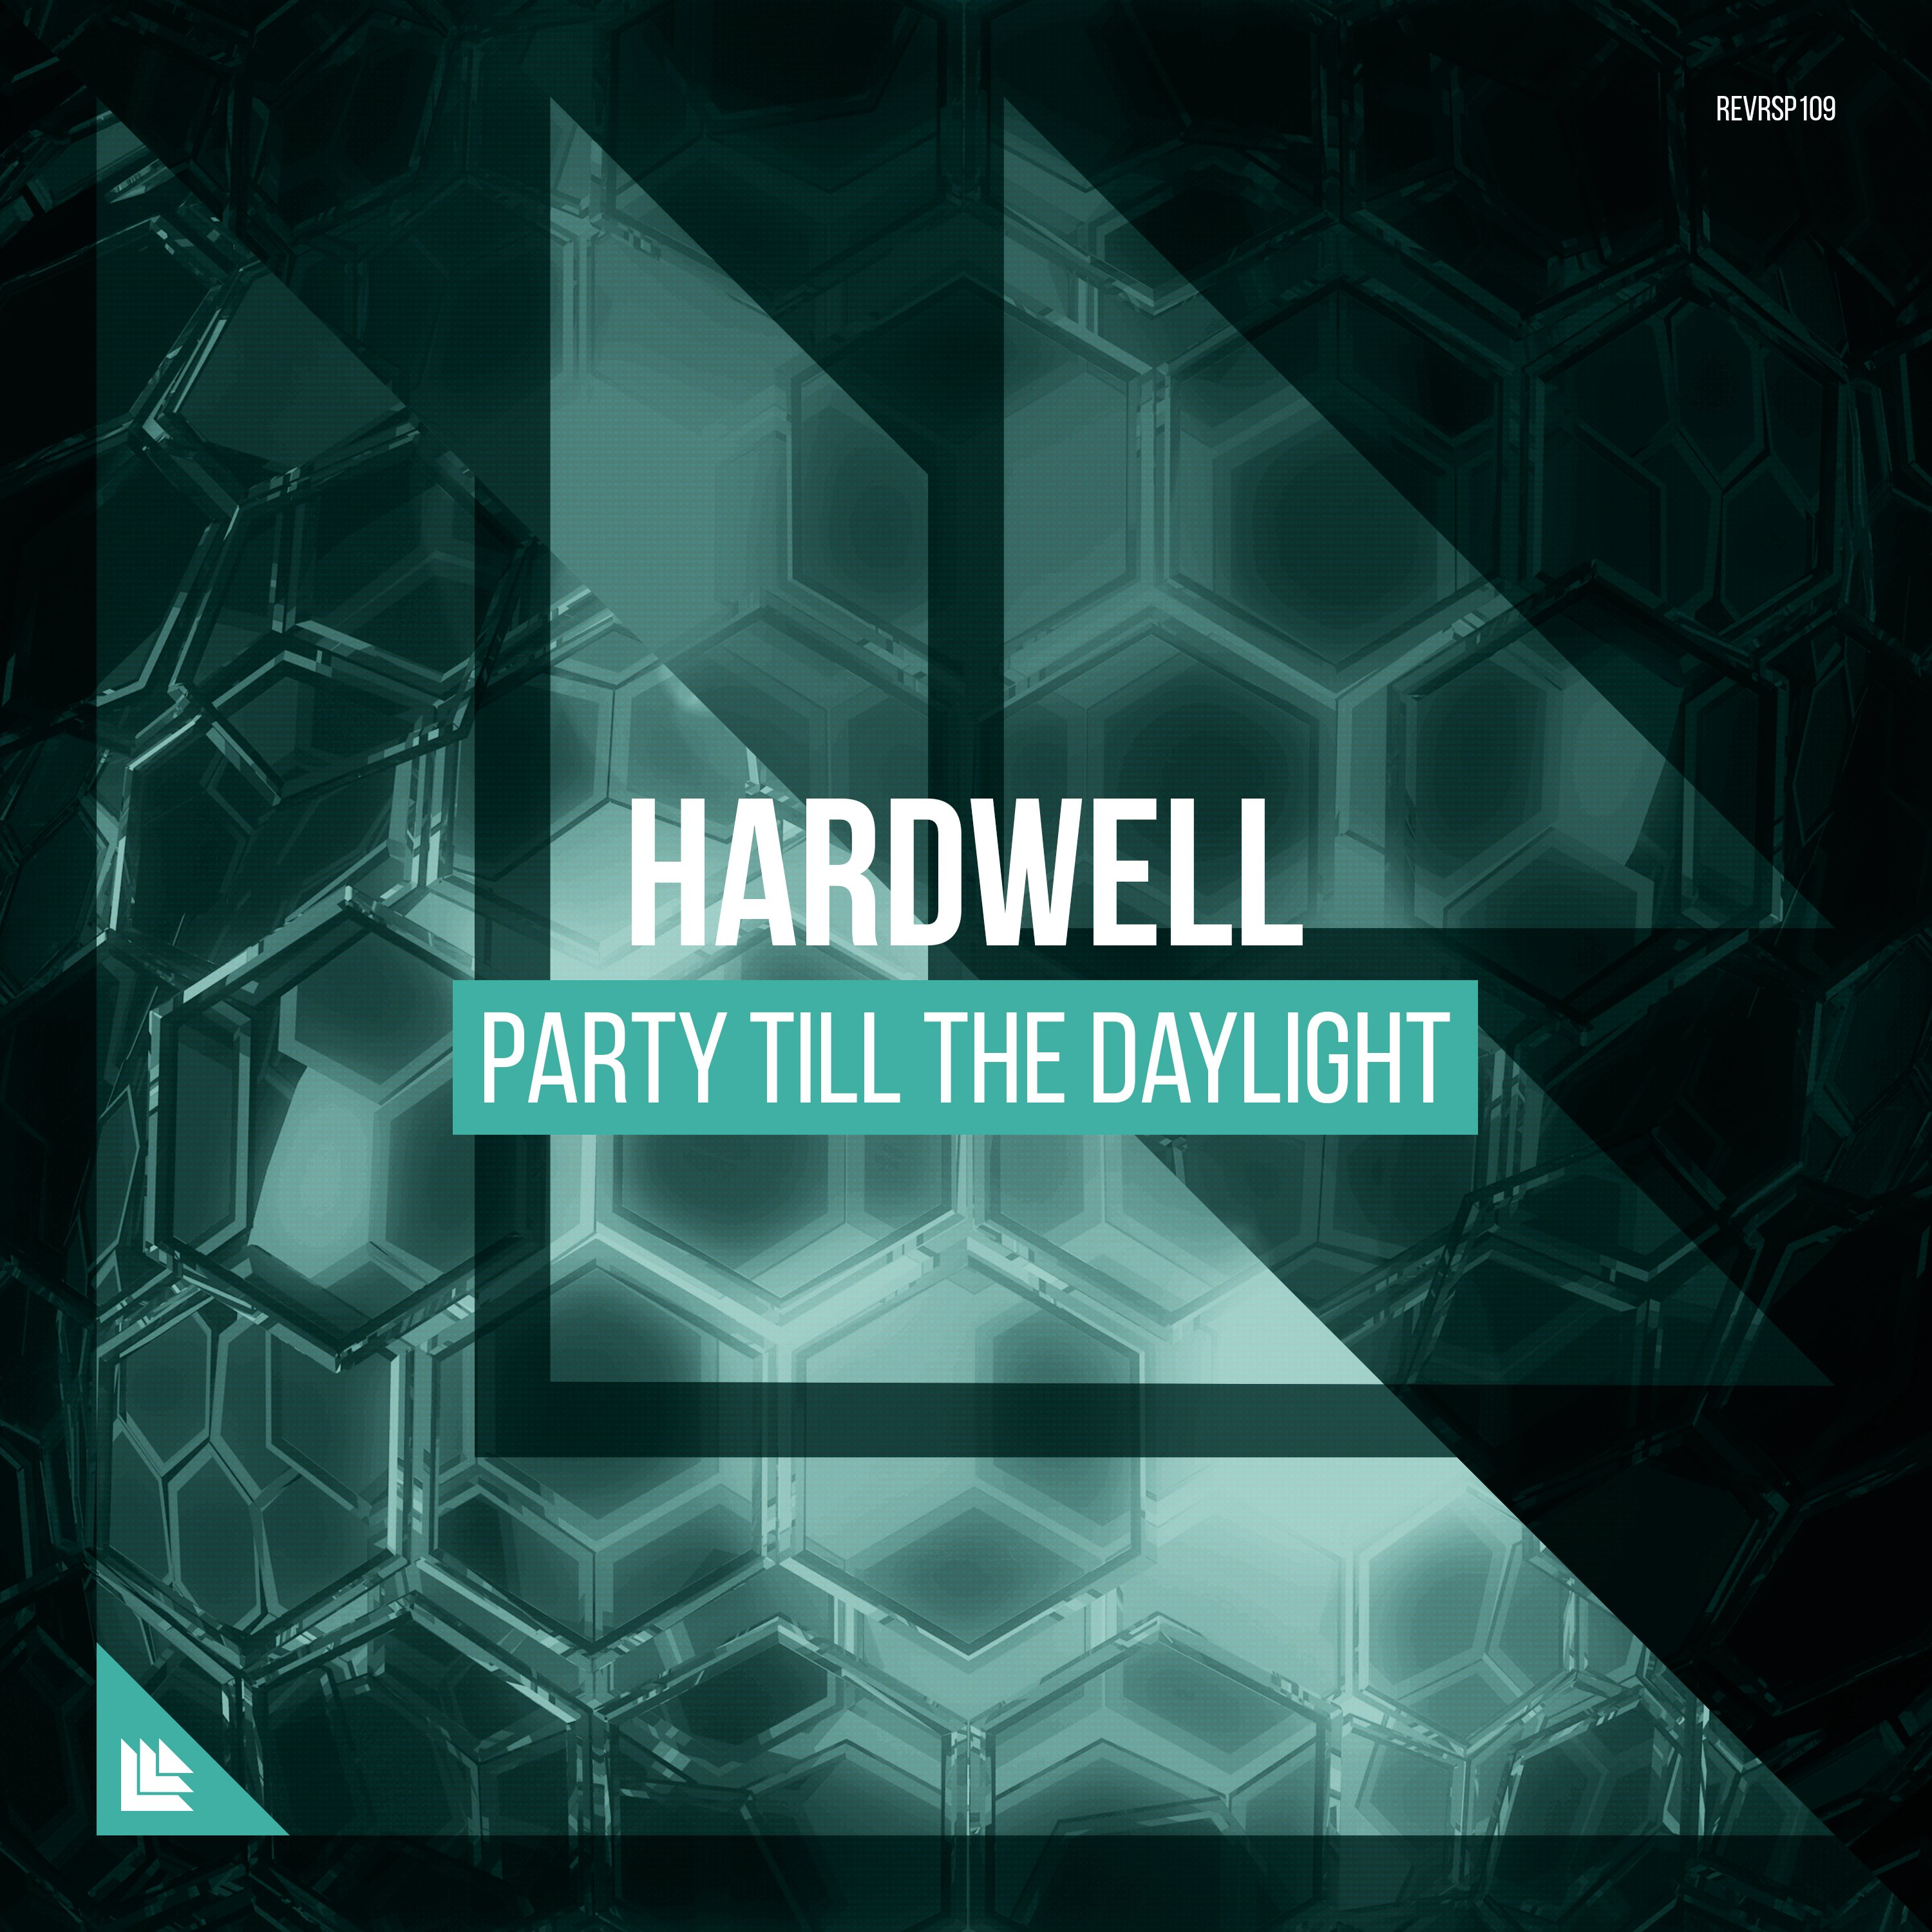 Party Till The Daylight - Hardwell